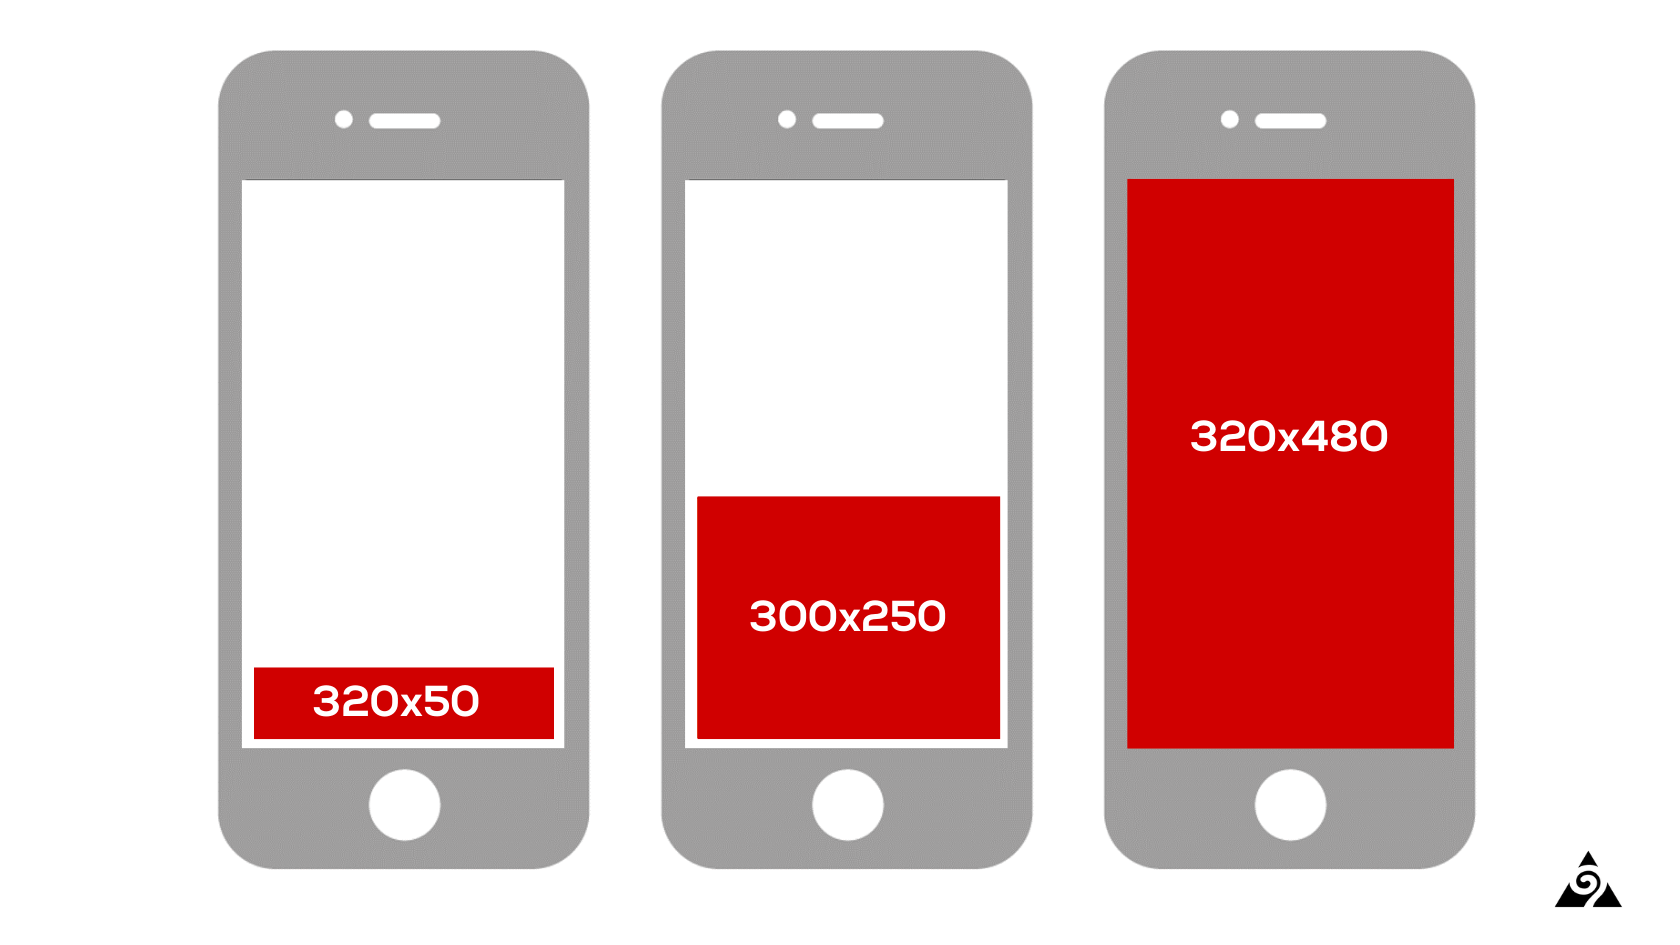 Top 3 Mobile Display Ad Sizes (320x50, 300x250, 320x480)